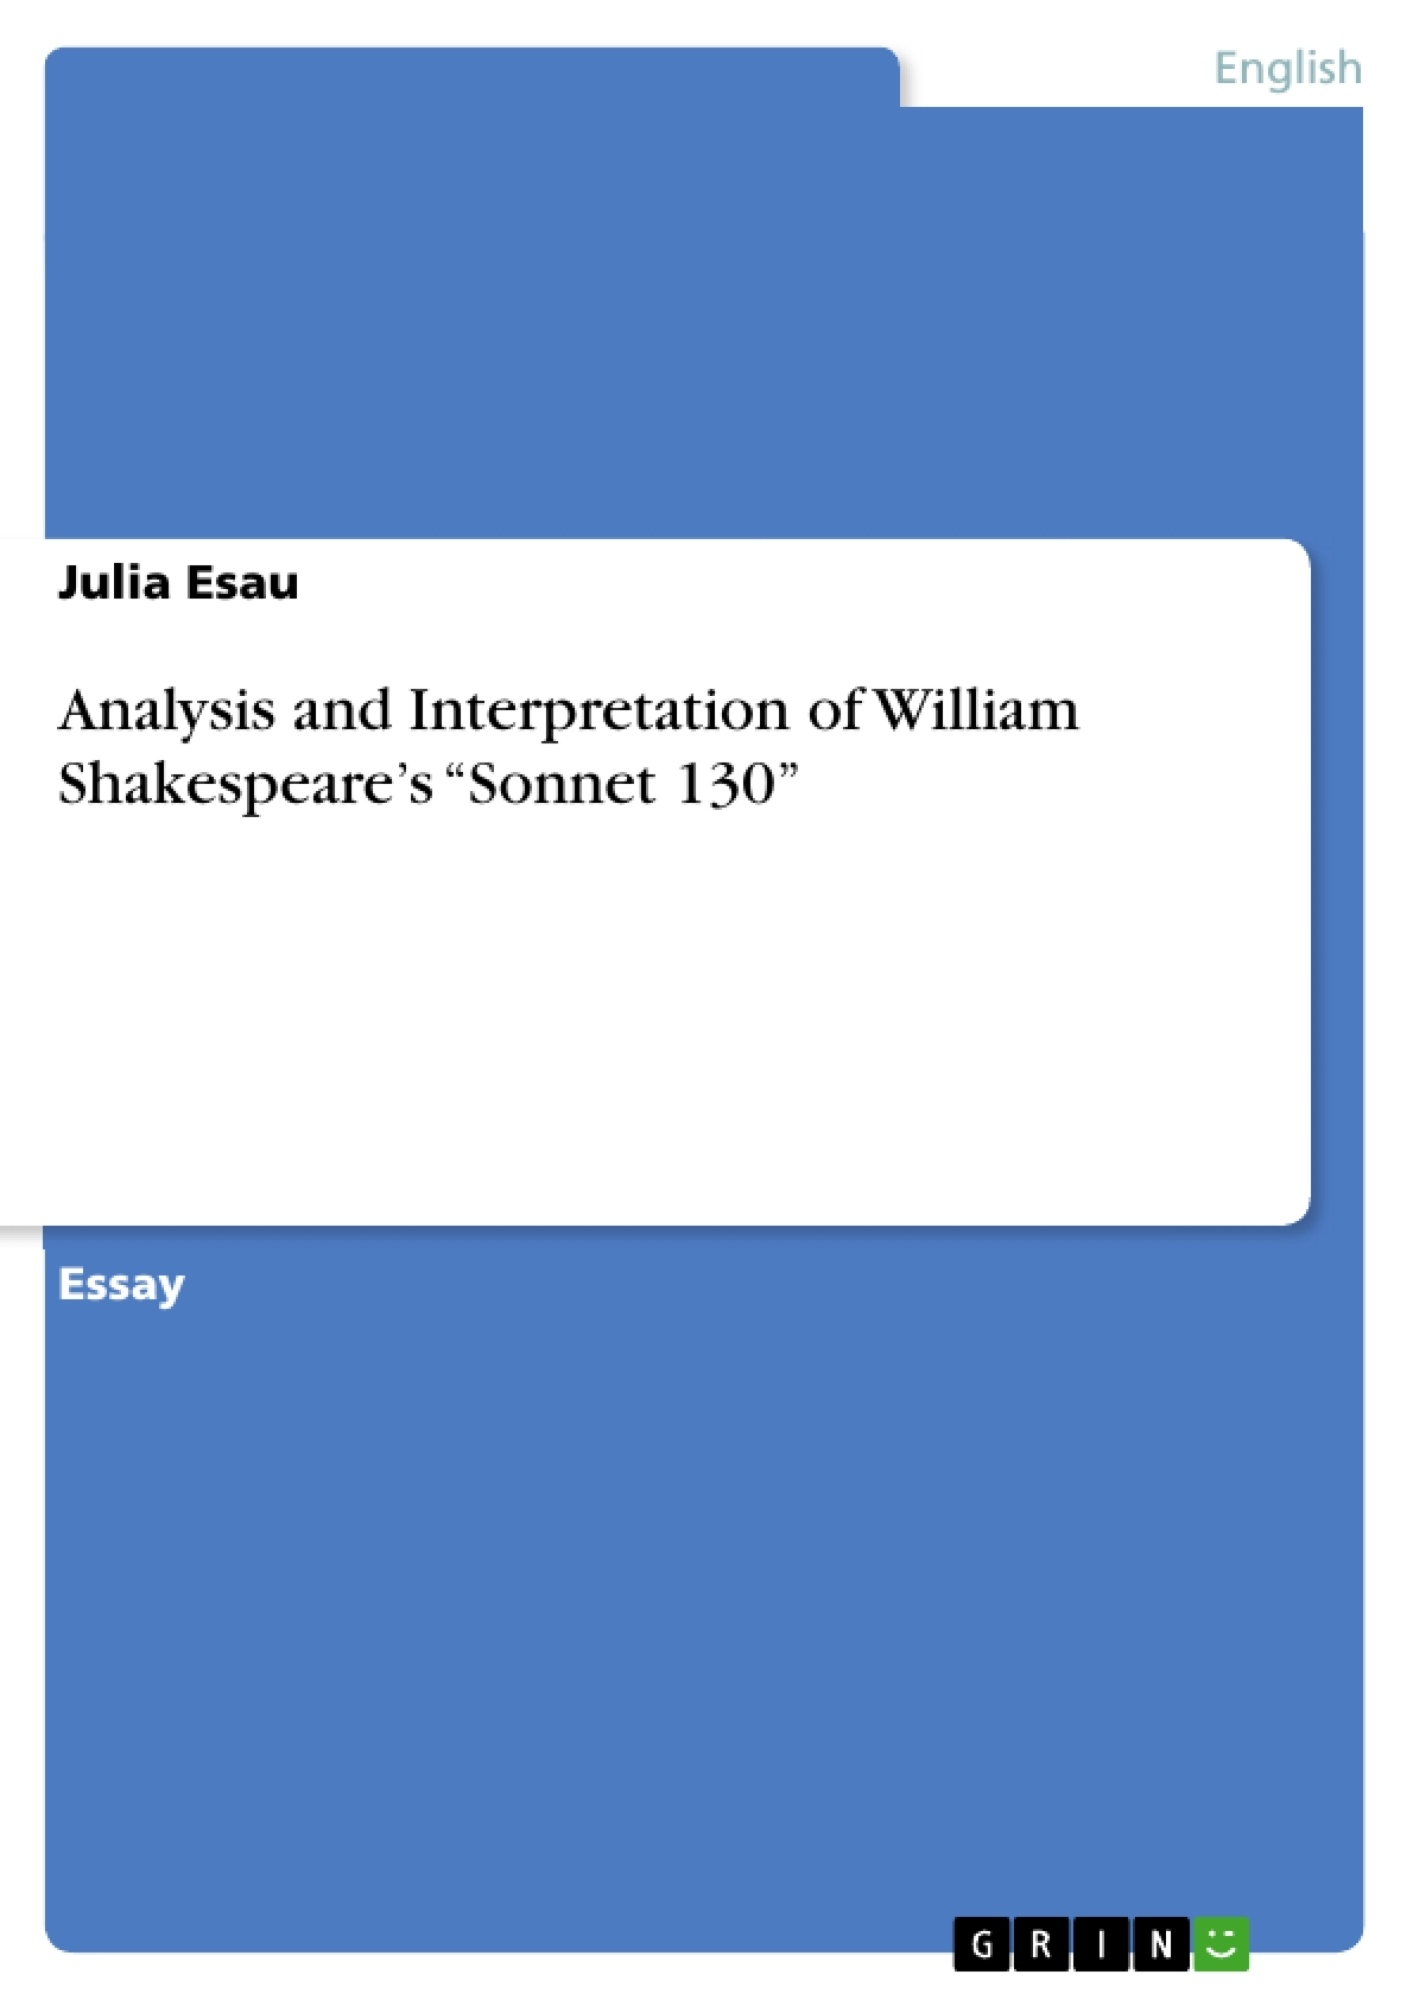 shakespeare essays analysis and interpretation of william  analysis and interpretation of william shakespeare s sonnet 130 analysis and interpretation of william shakespeare s